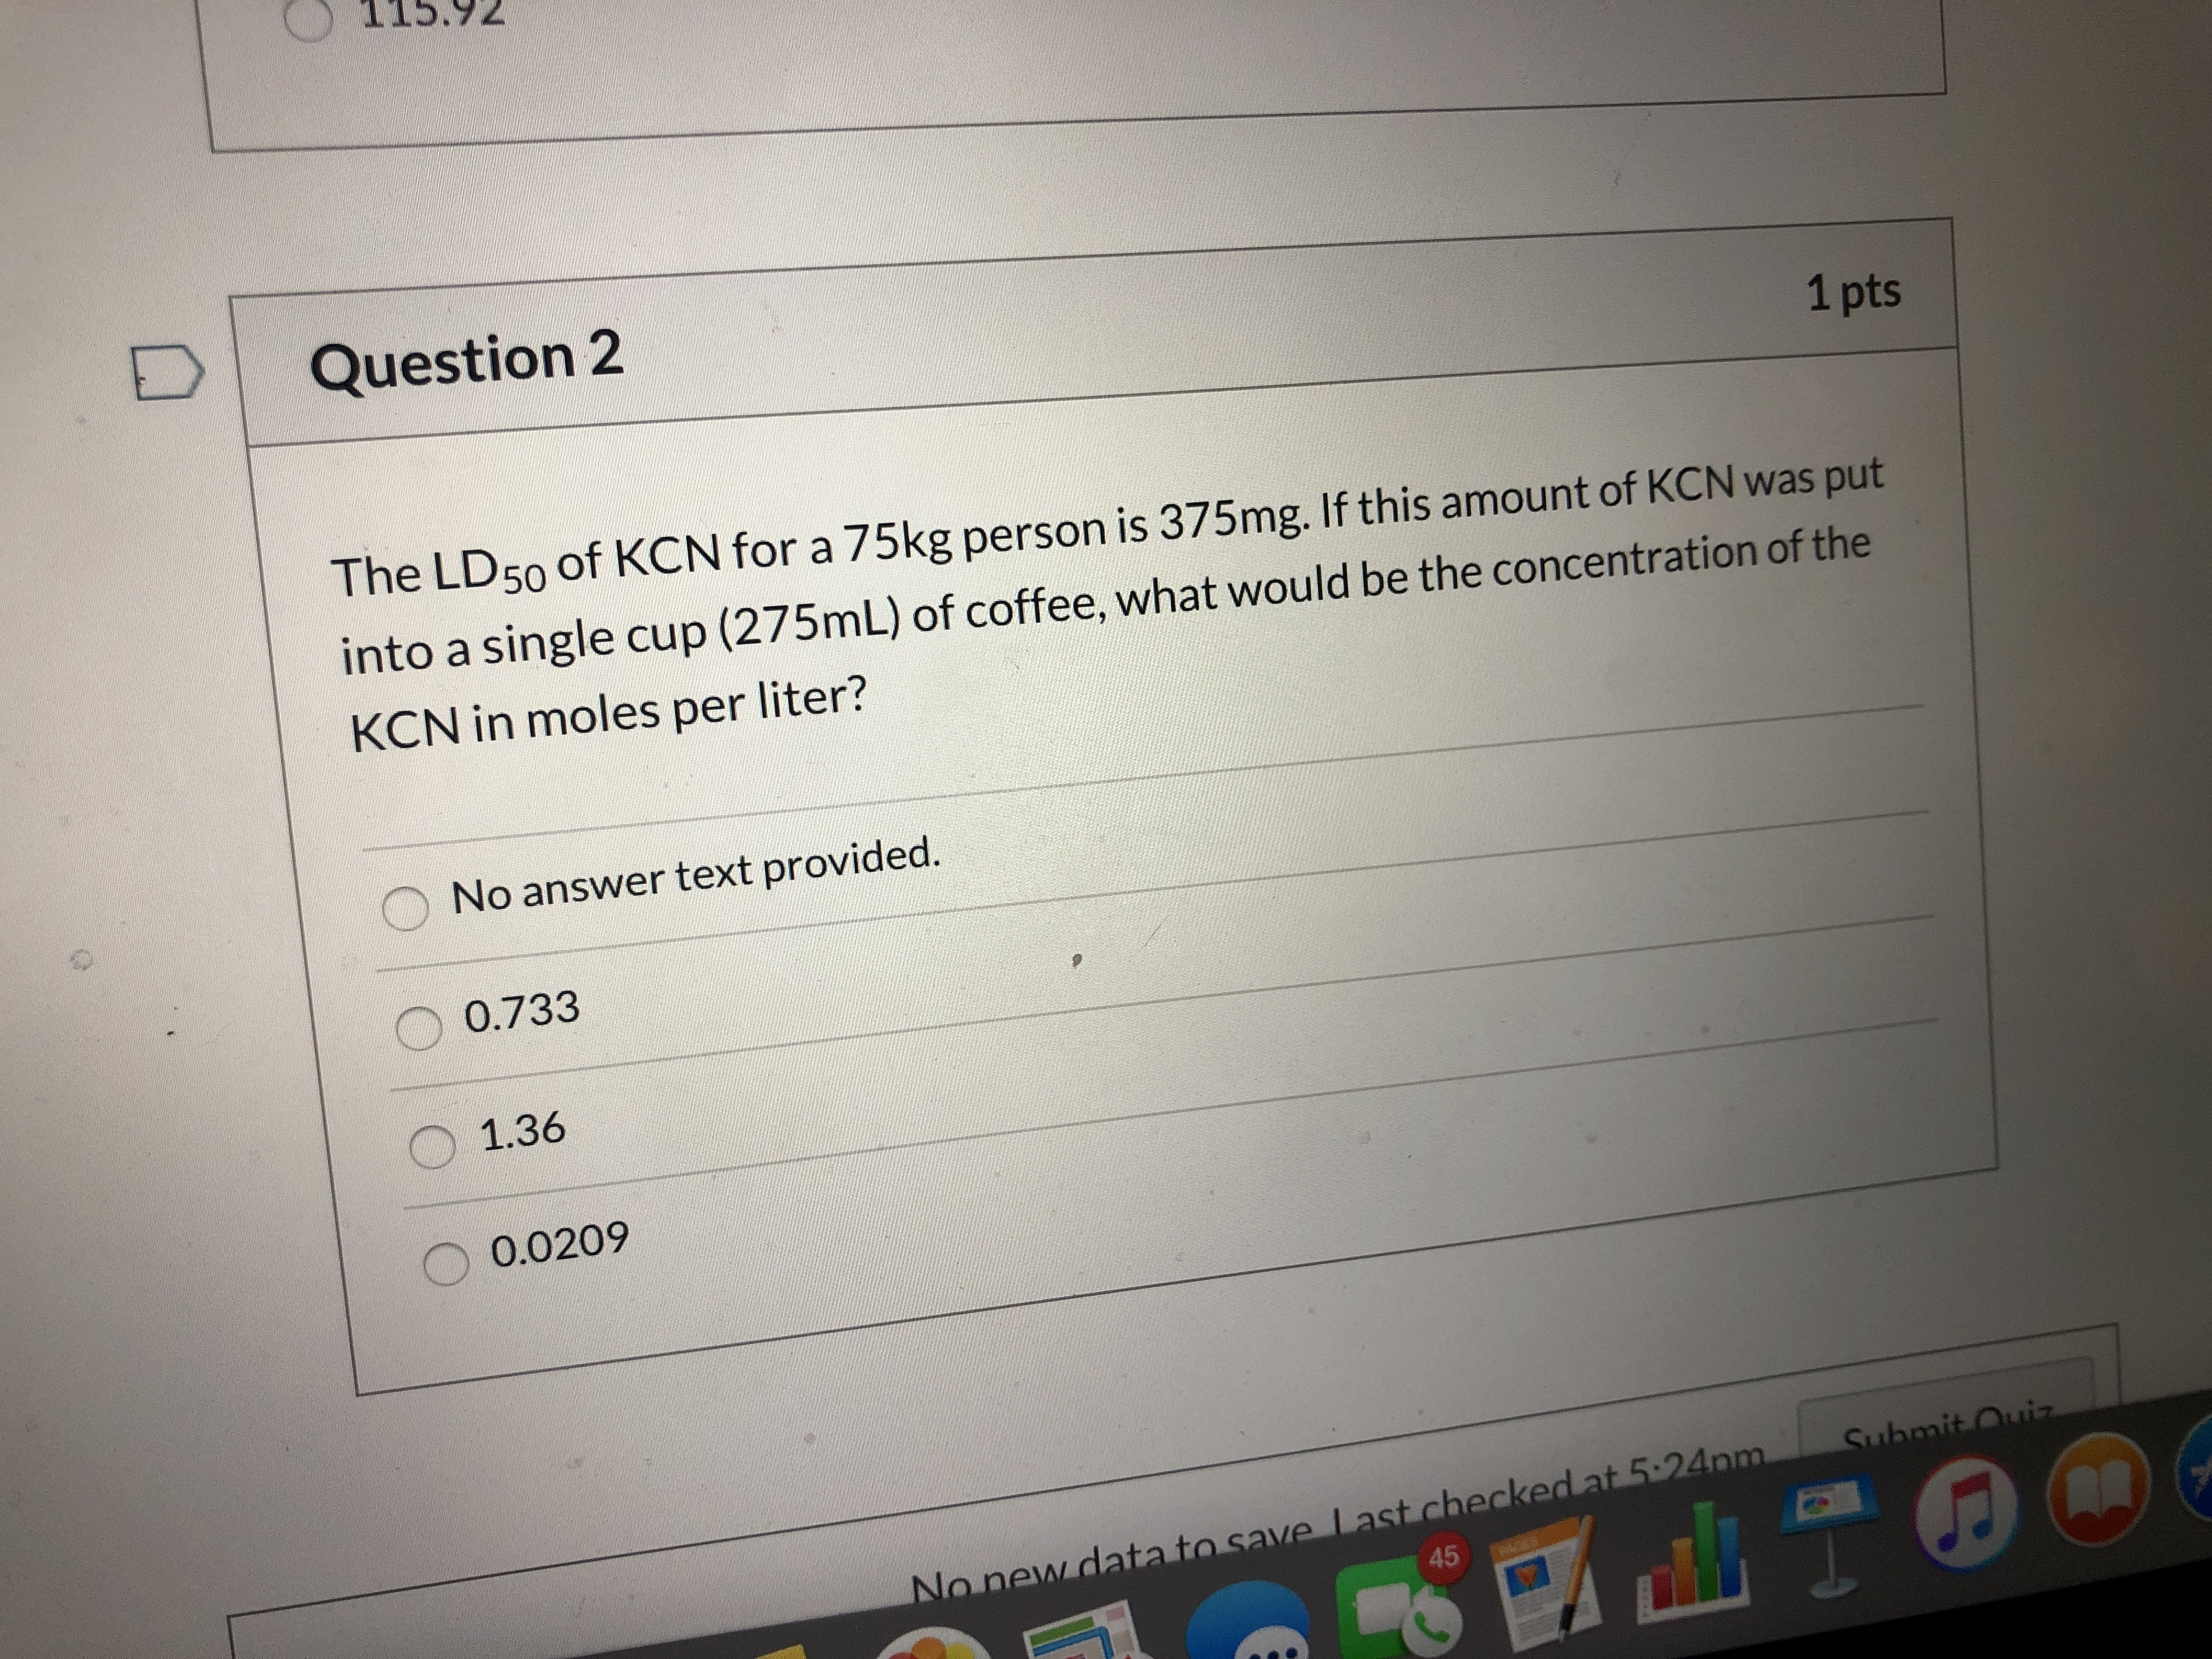 5.92 Question 2 1 pts The LD50 of KCN for a 75kg person is 375mg. If this amount of KCN was put into a single cup (275mL) of coffee, what would be the concentration of the KCN in moles per liter? No answer text provided. 0.733 1.36 0.0209 Submit Ouiz No new data to save Last checked at 5:24pm 45 AGES